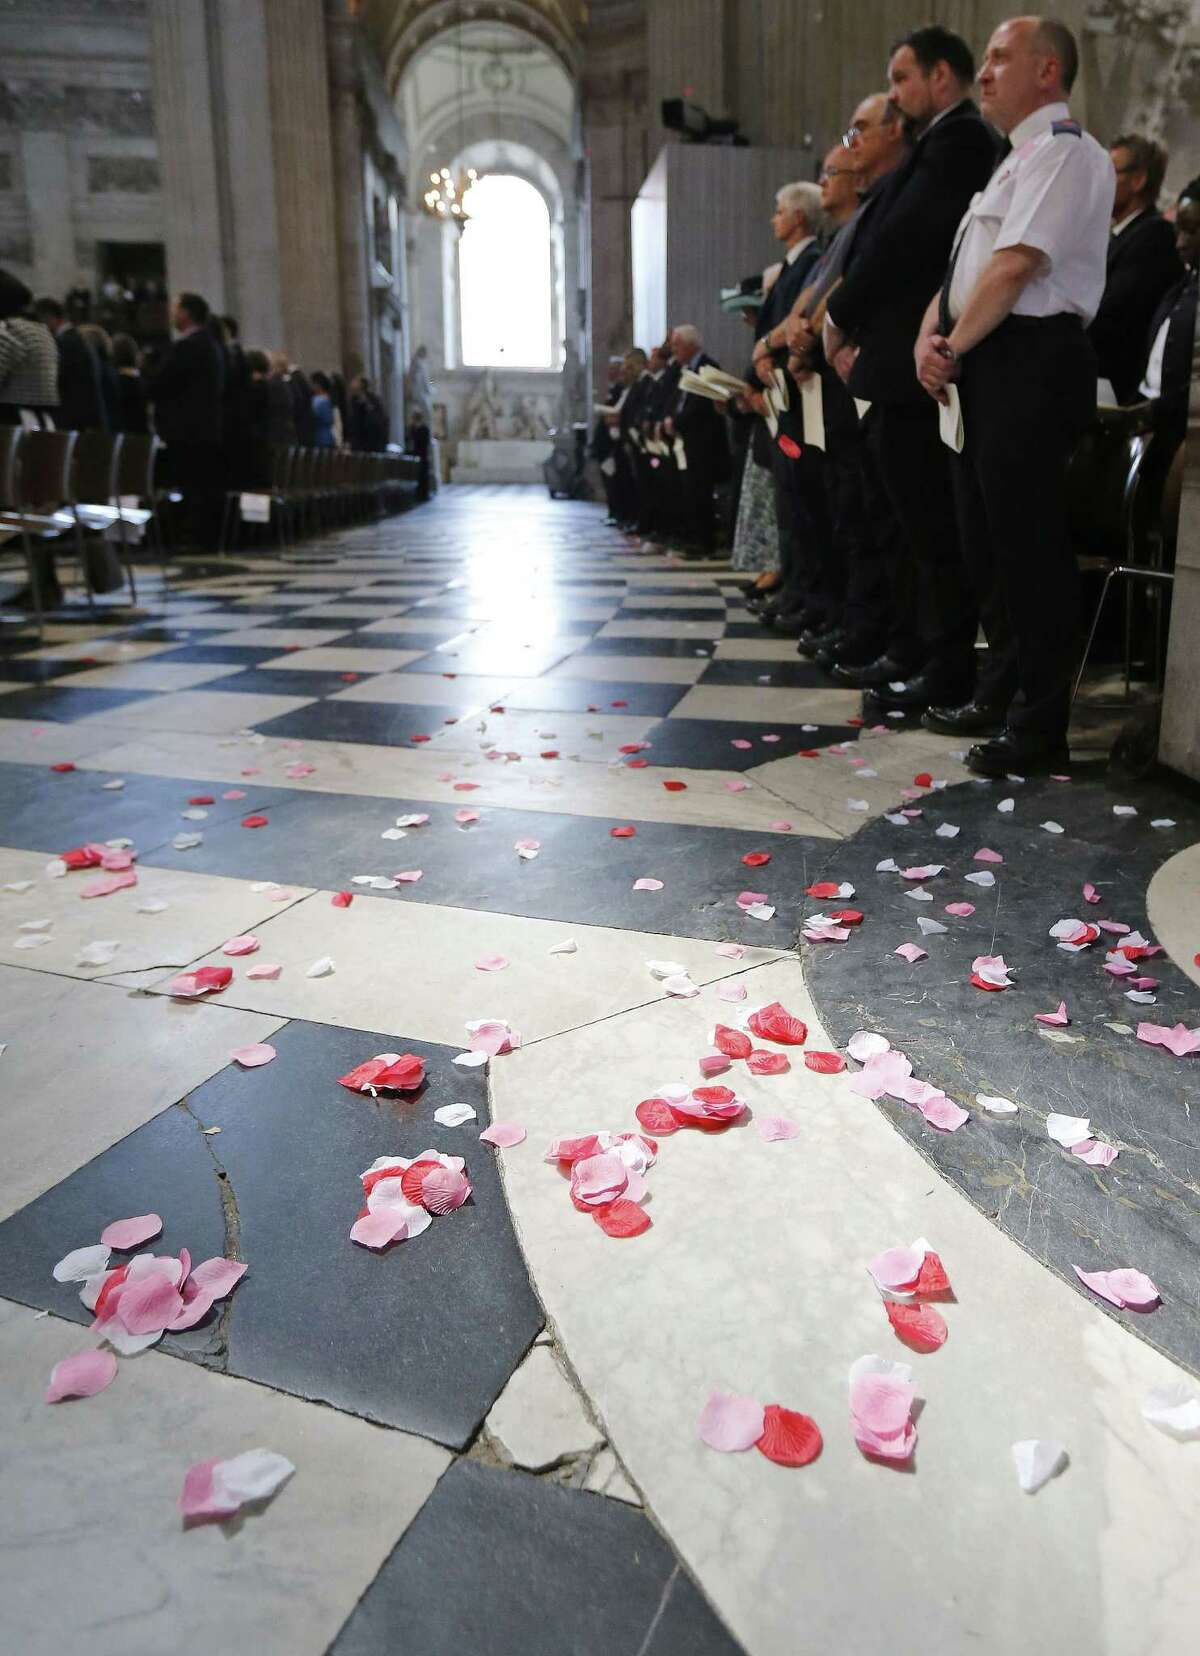 Poppy petals are symbolically scattered on the floor during a service Tuesday, July 7, 2015, in St Paul's Cathedral to commemorate the tenth anniversary of the London Bombings in London.